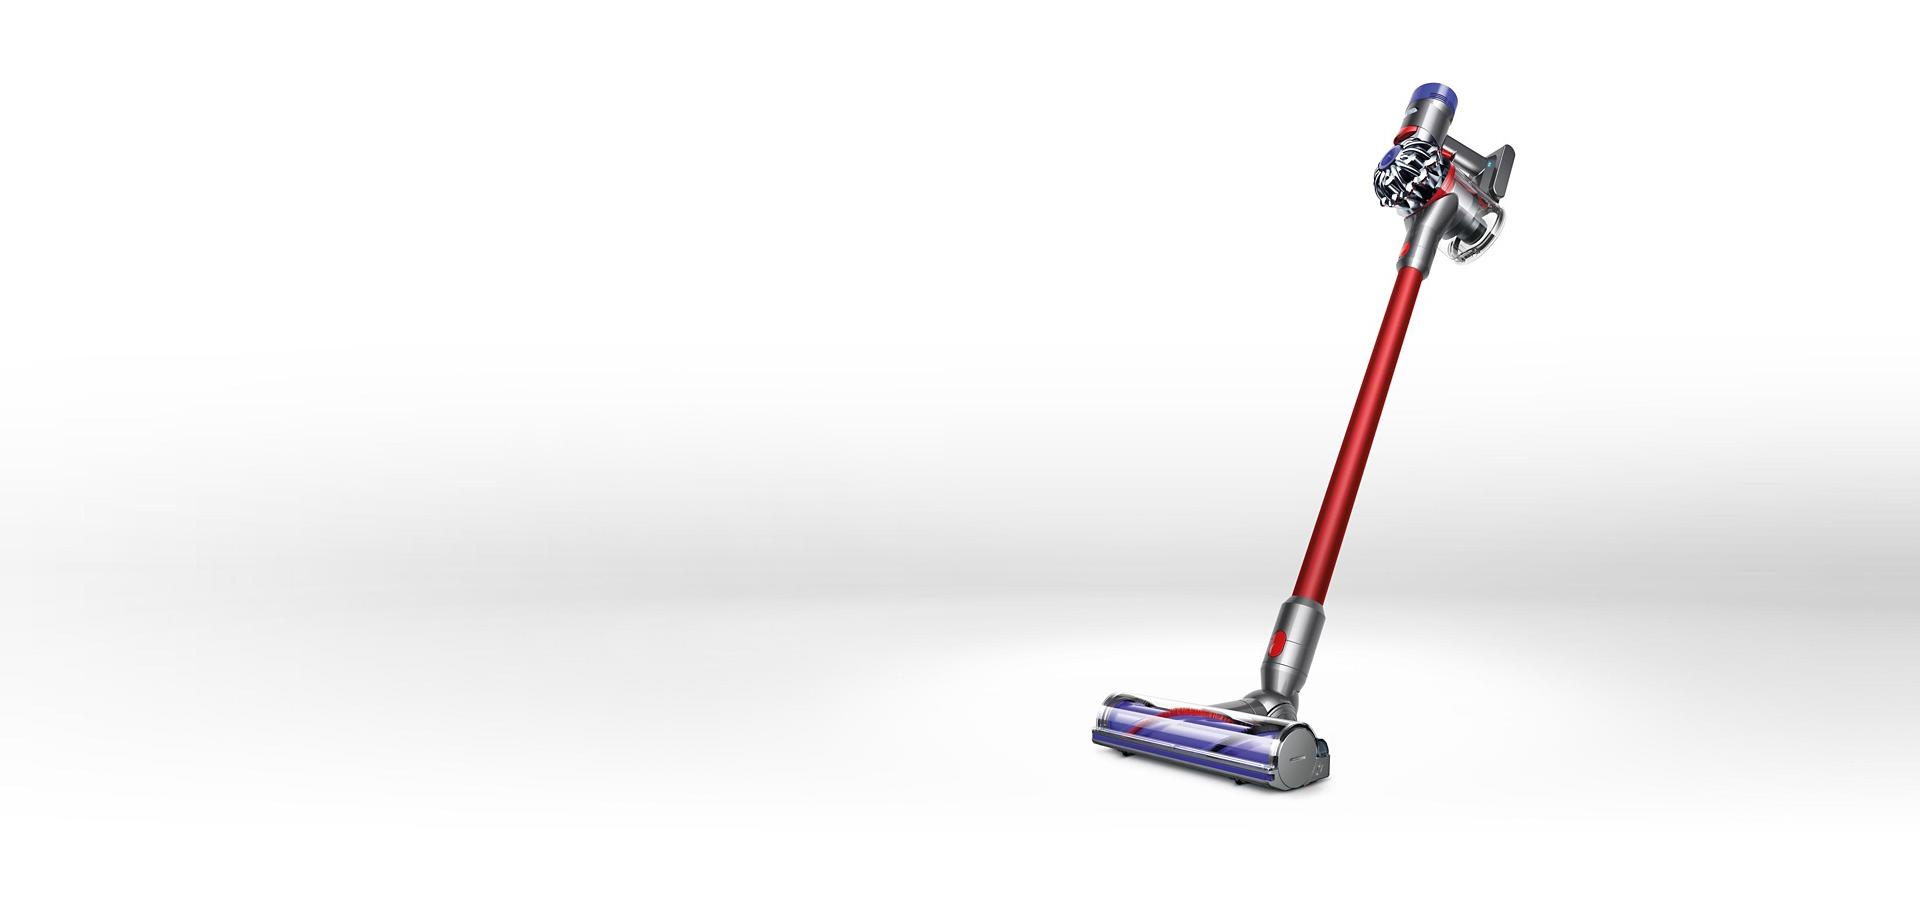 Two Dyson V7 vacuum cleaners